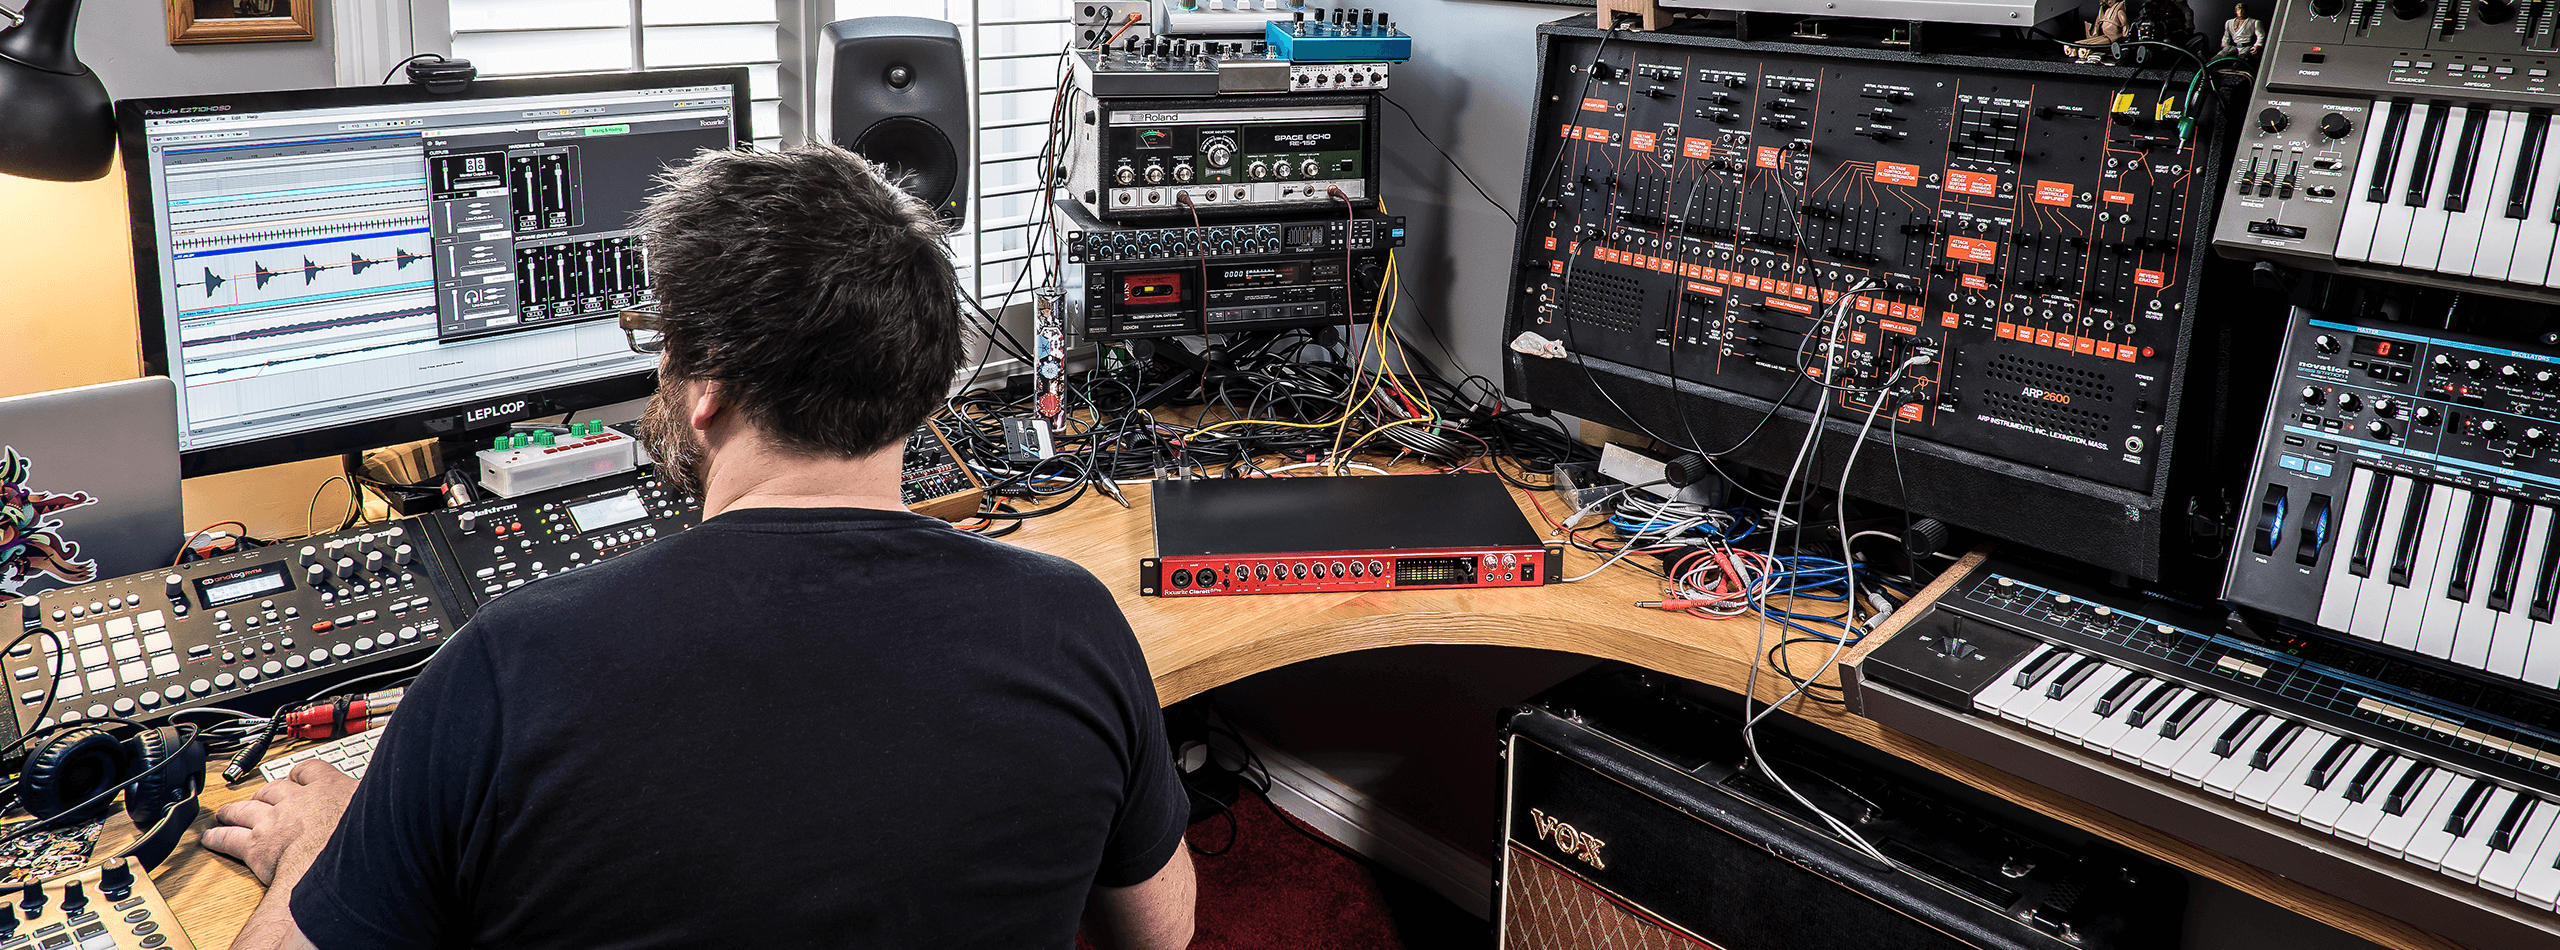 Project studio with Clarett 8Pre and synths